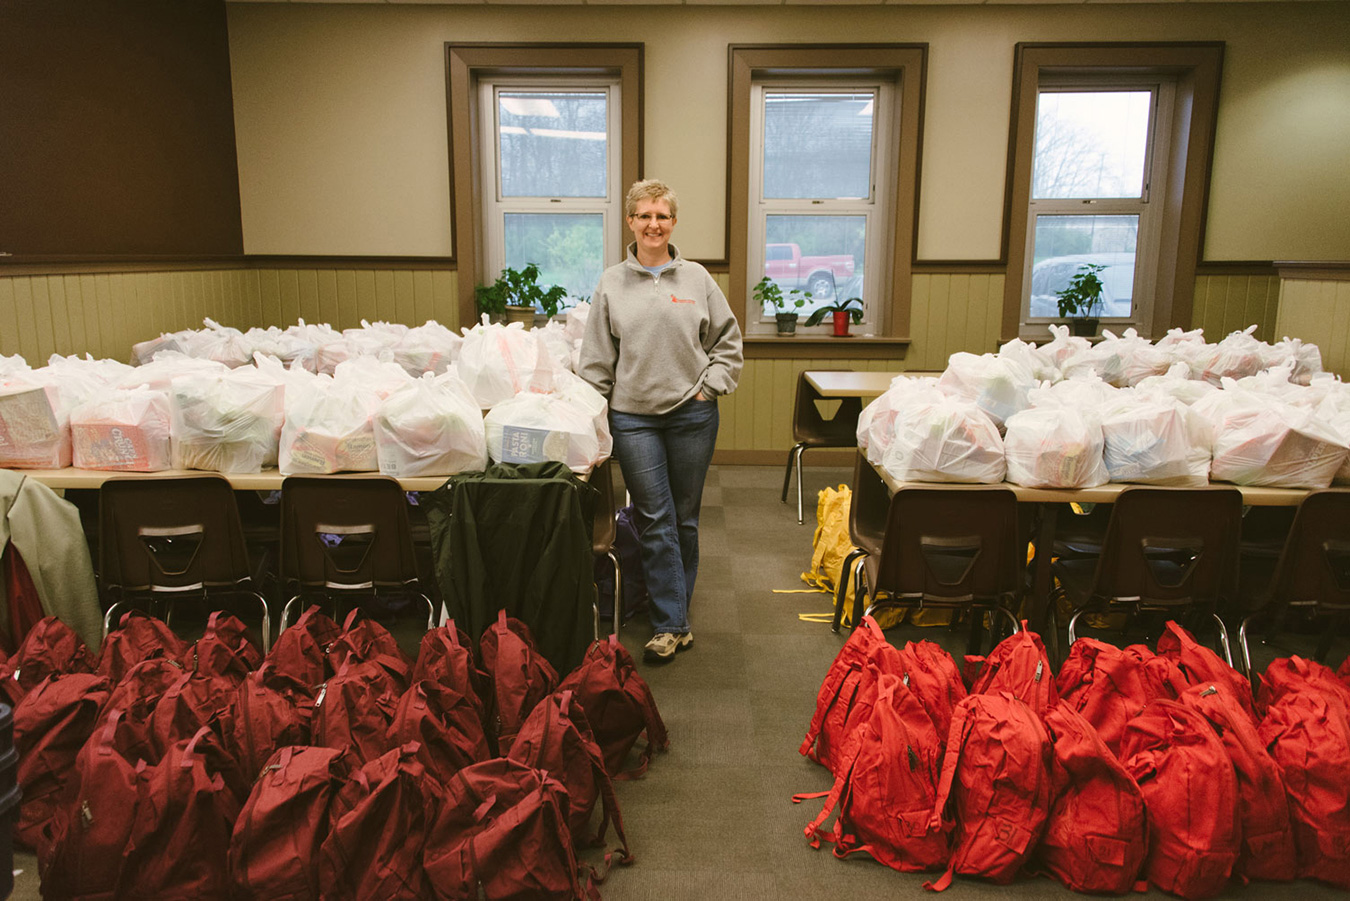 Vicki Pierce, executive director of Community Kitchen of Monroe County, oversees many programs fighting food insecurity, including sit-down meals at their South Rogers Street location and the Backpack Buddies program that sends backpacks of food home with local food-insecure children for the weekend.   Photo by Natasha Komoda